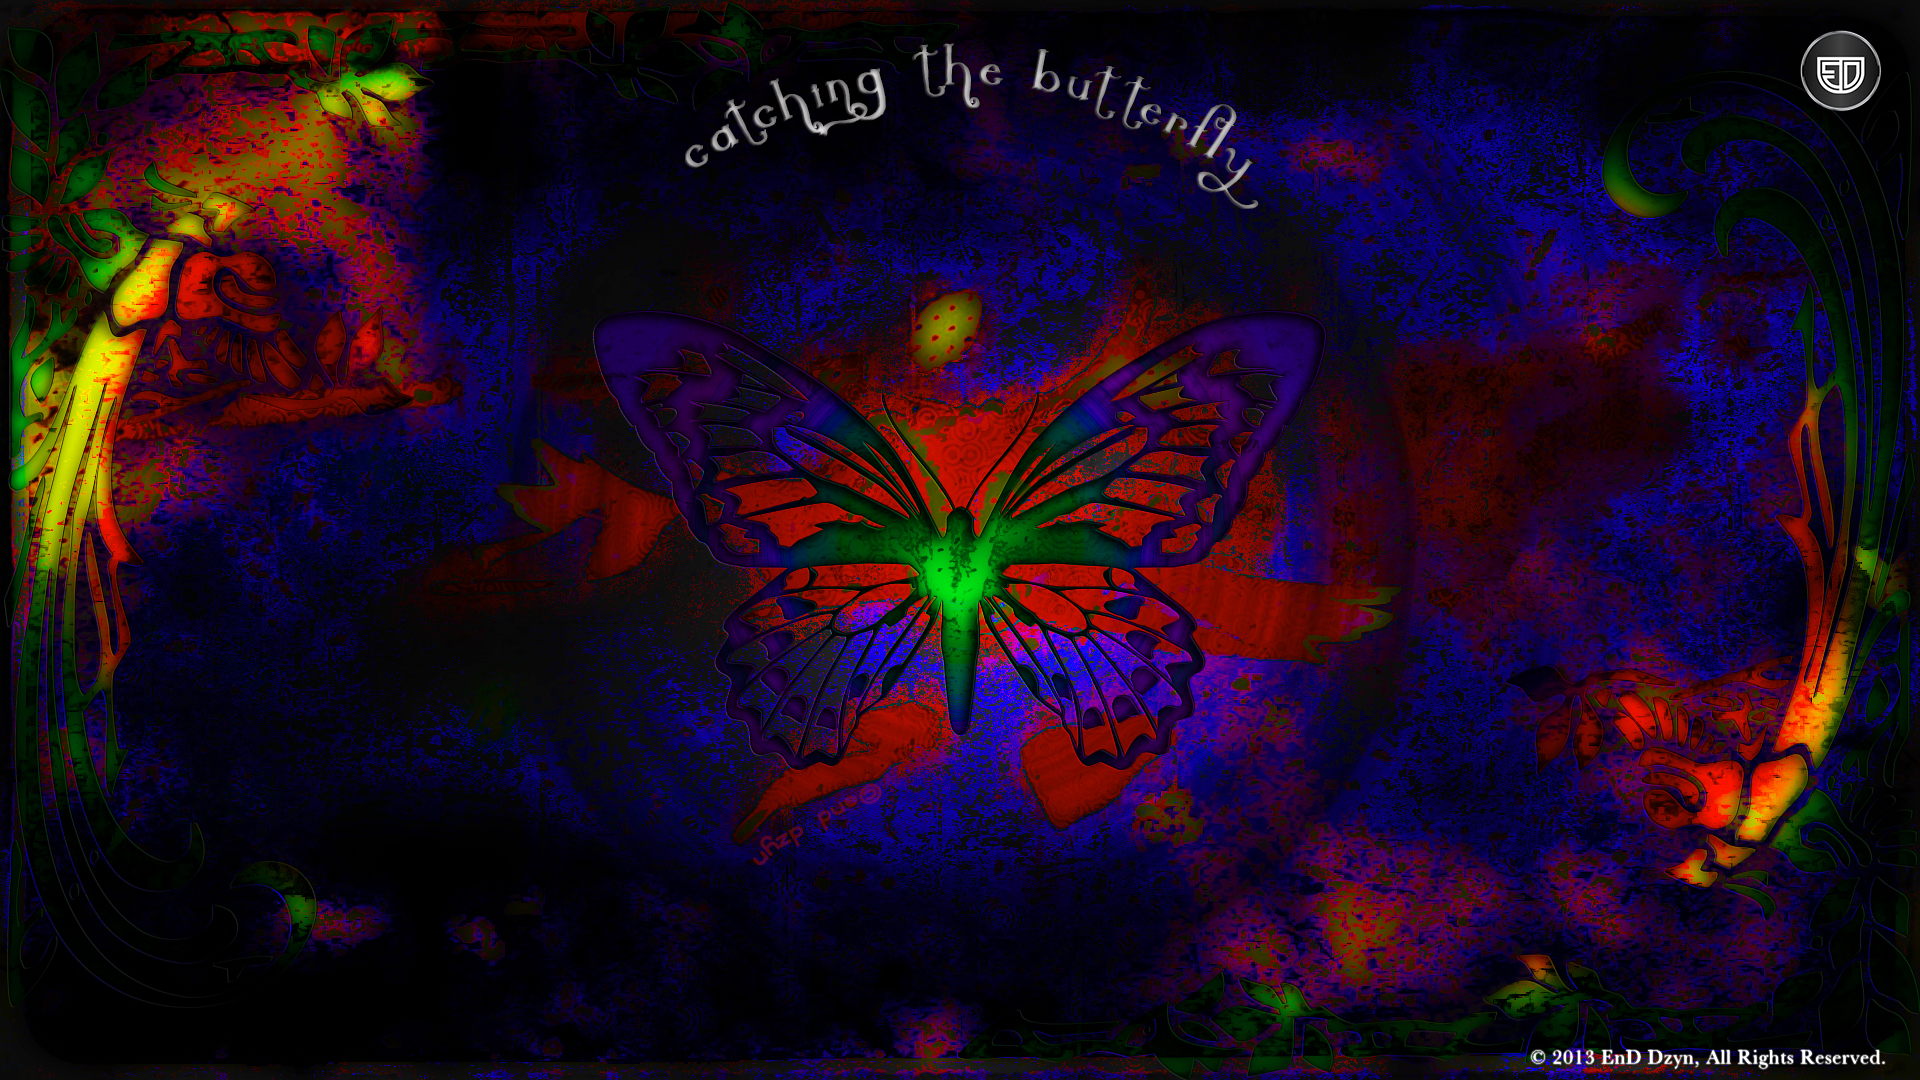 Catching the Butterfly Abstract HD Wallpaper Backgrounds   EnD Dzyn 1920x1080